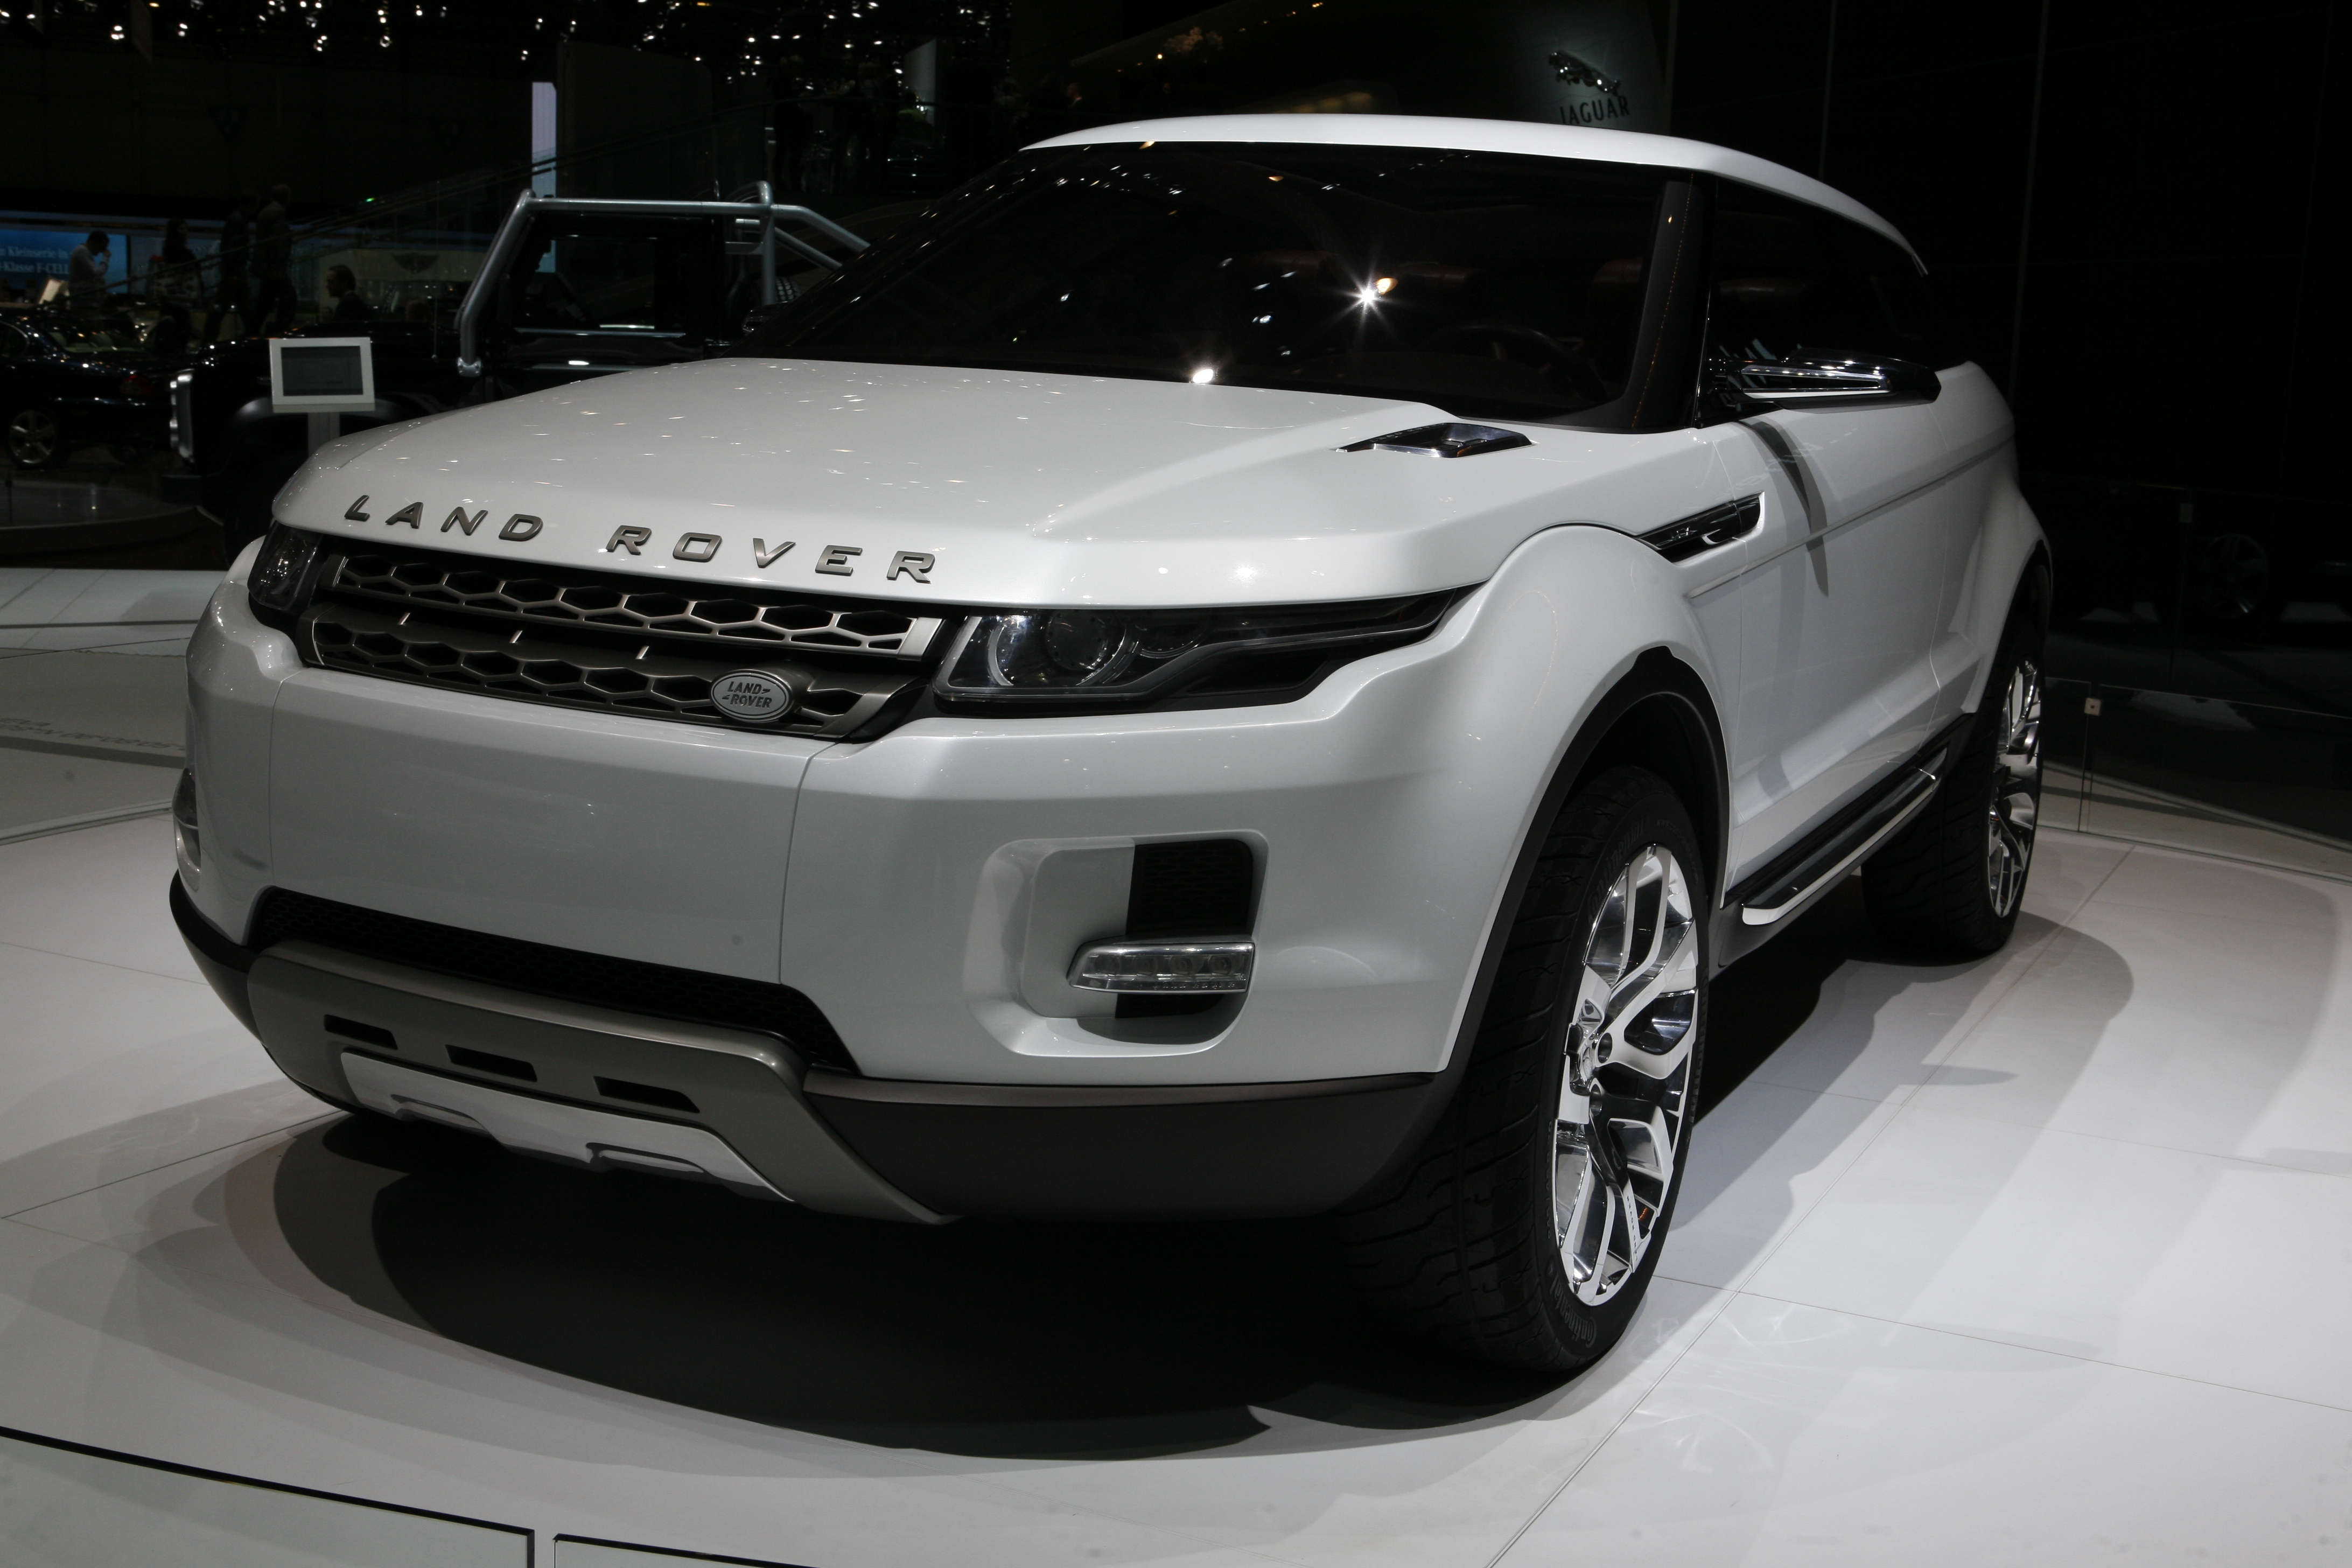 Land Rover front Angle Wallpaper Free Download Image Of